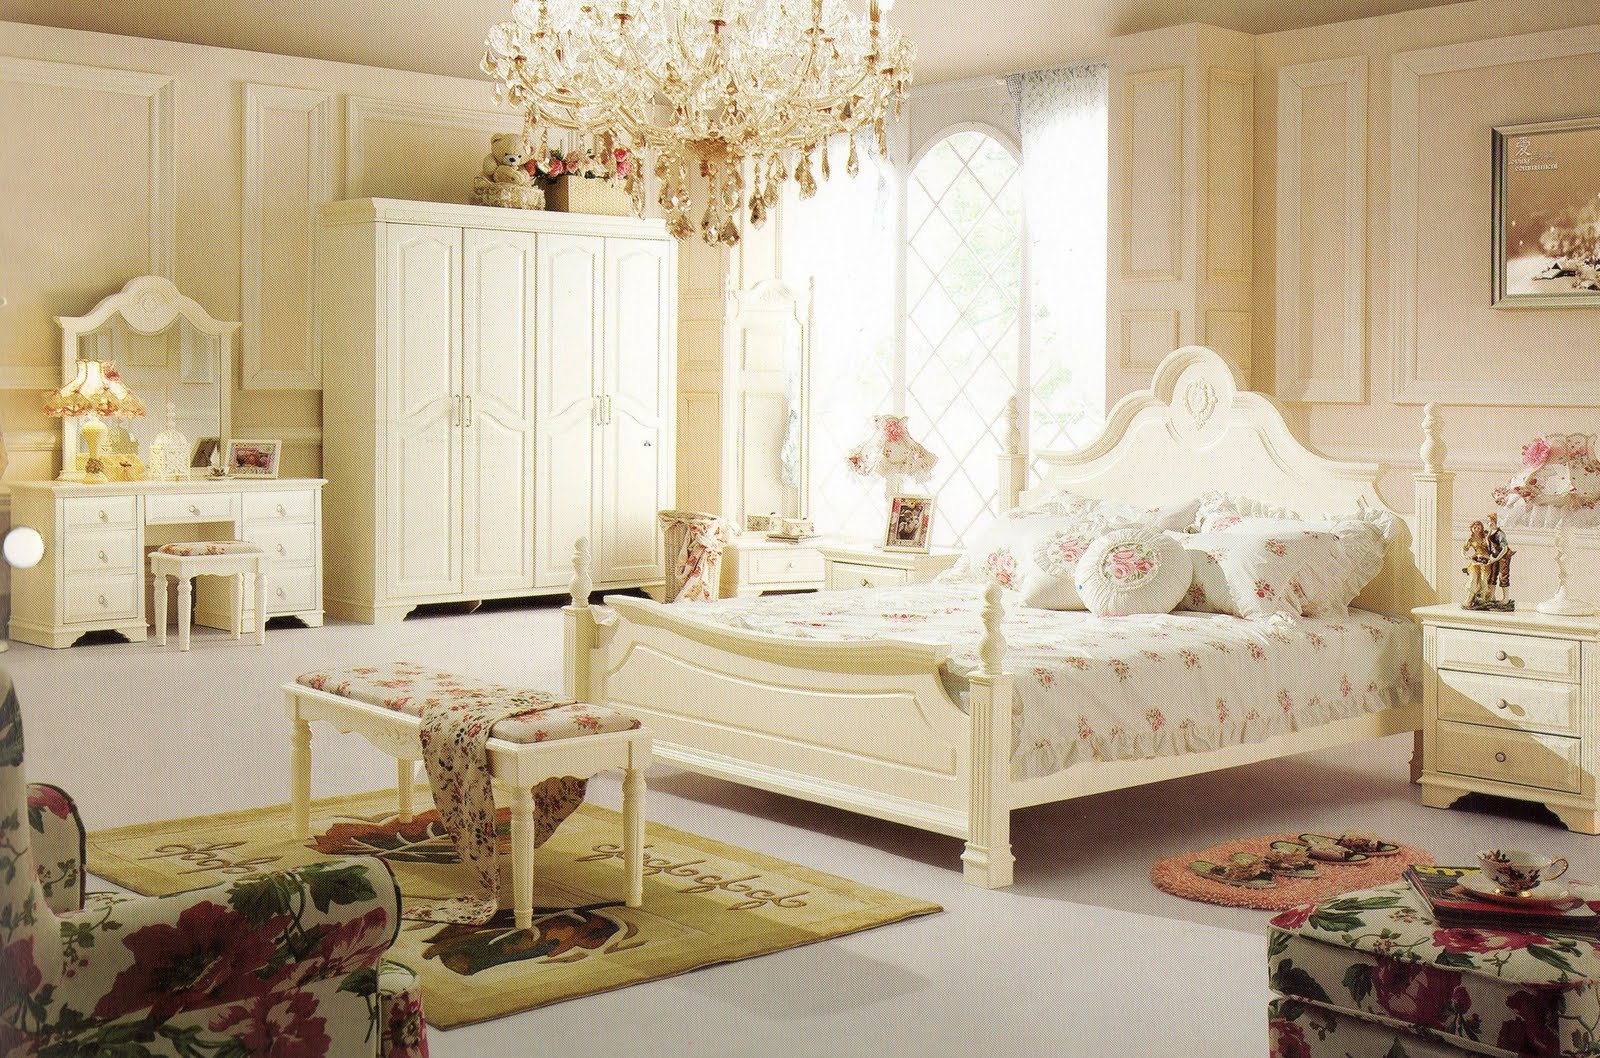 fsd: new arrival of our beautiful and elegant french style bedroom suites